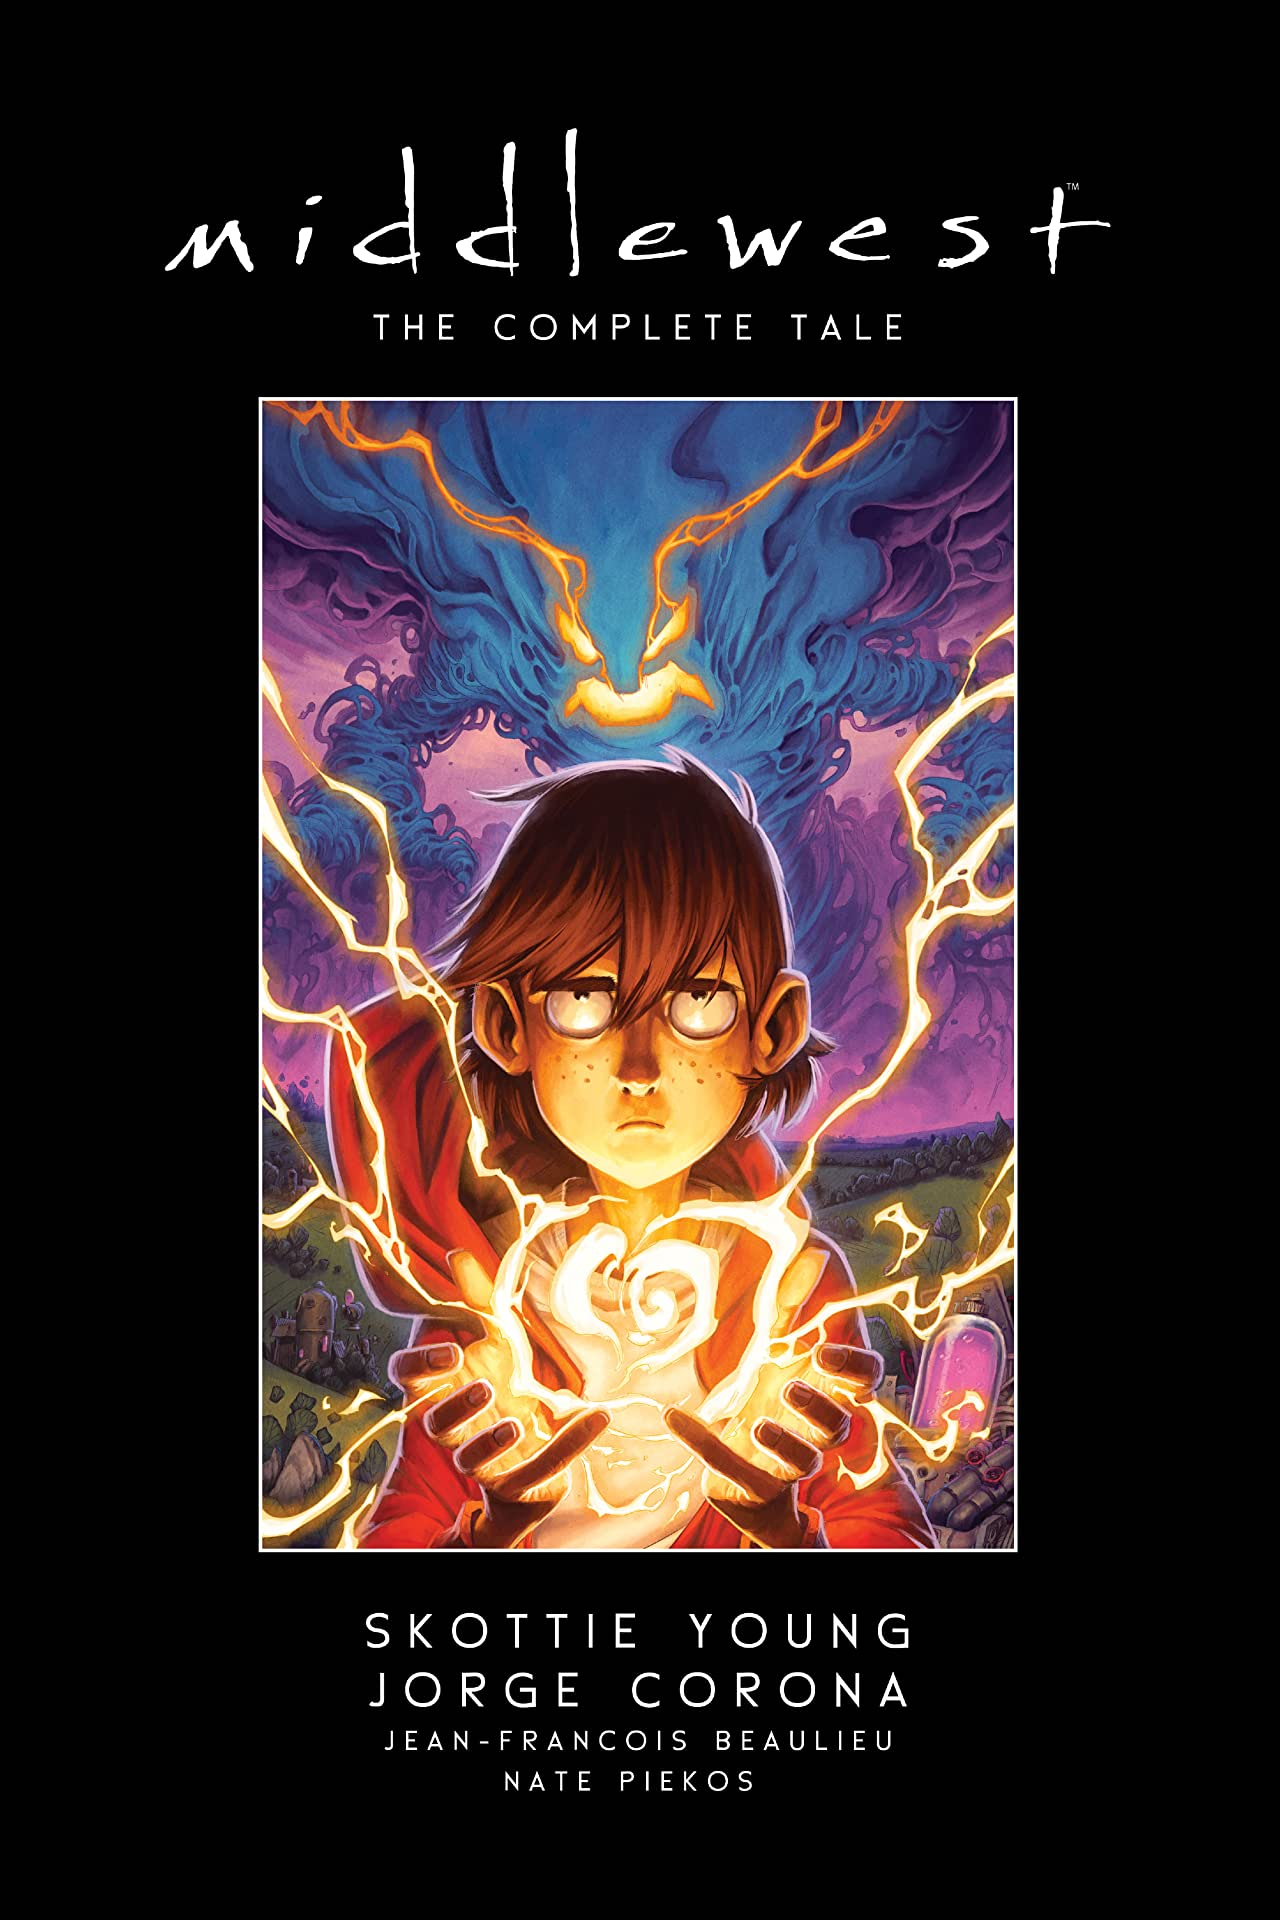 Middlewest: The Complete Tale